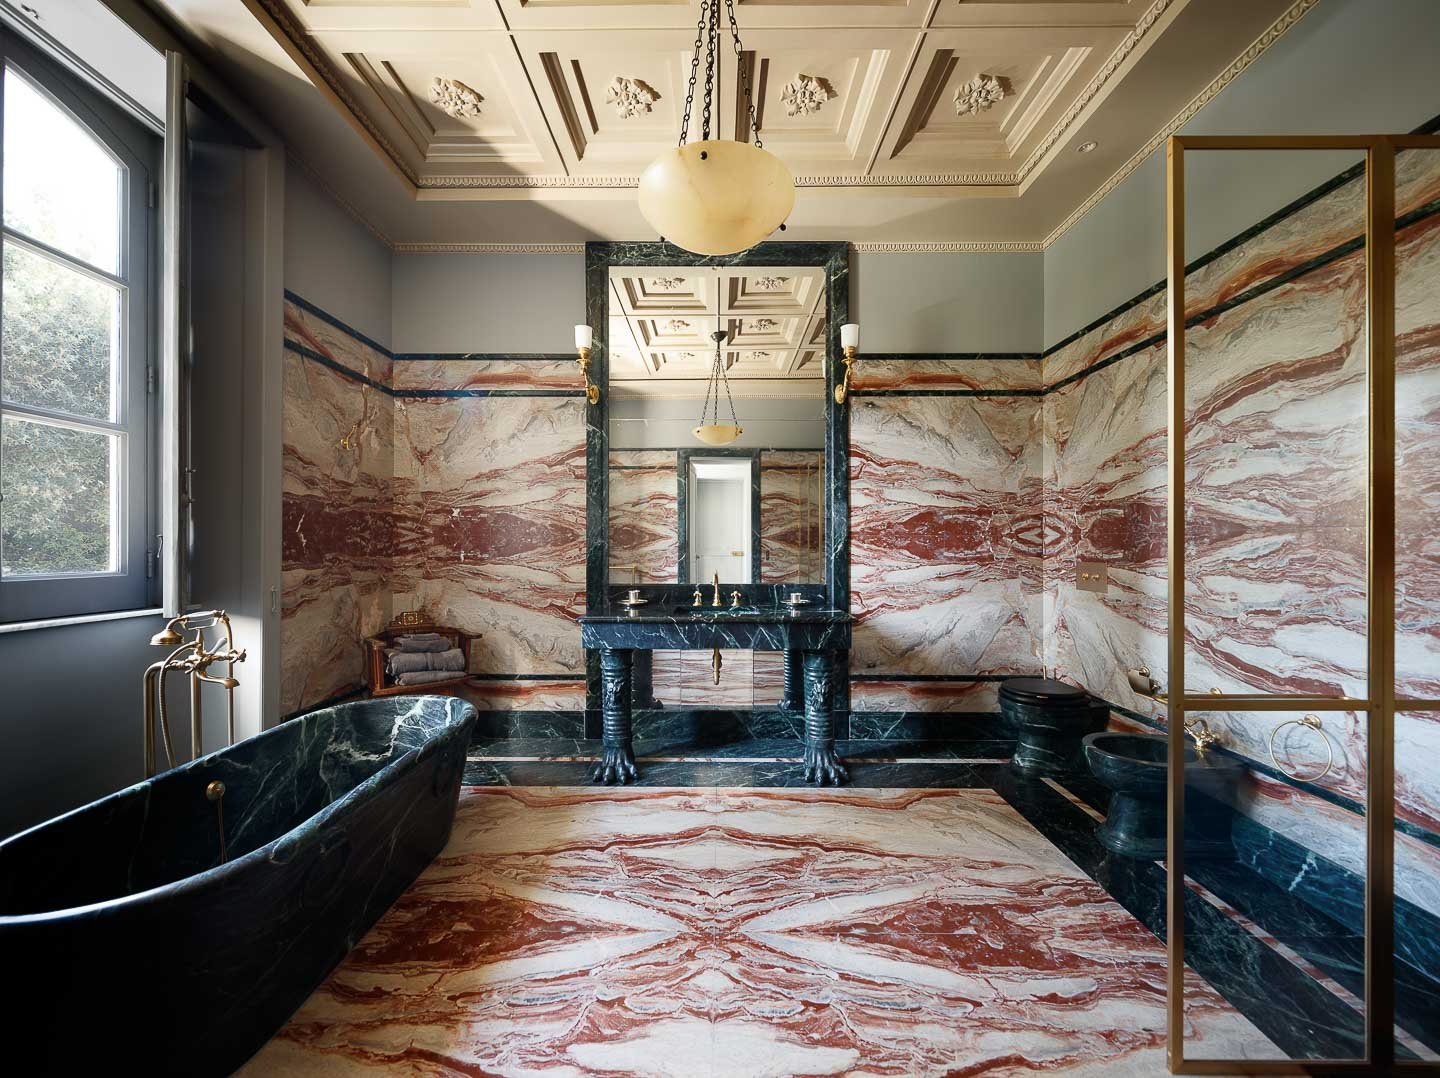 Villa Astor exclusive bathroom bathtub rare marble decor decoration interior French interiordesigner Jacues Garcia luxury travel experience guest holiday vacation stay bedrooms The Heritage Collection